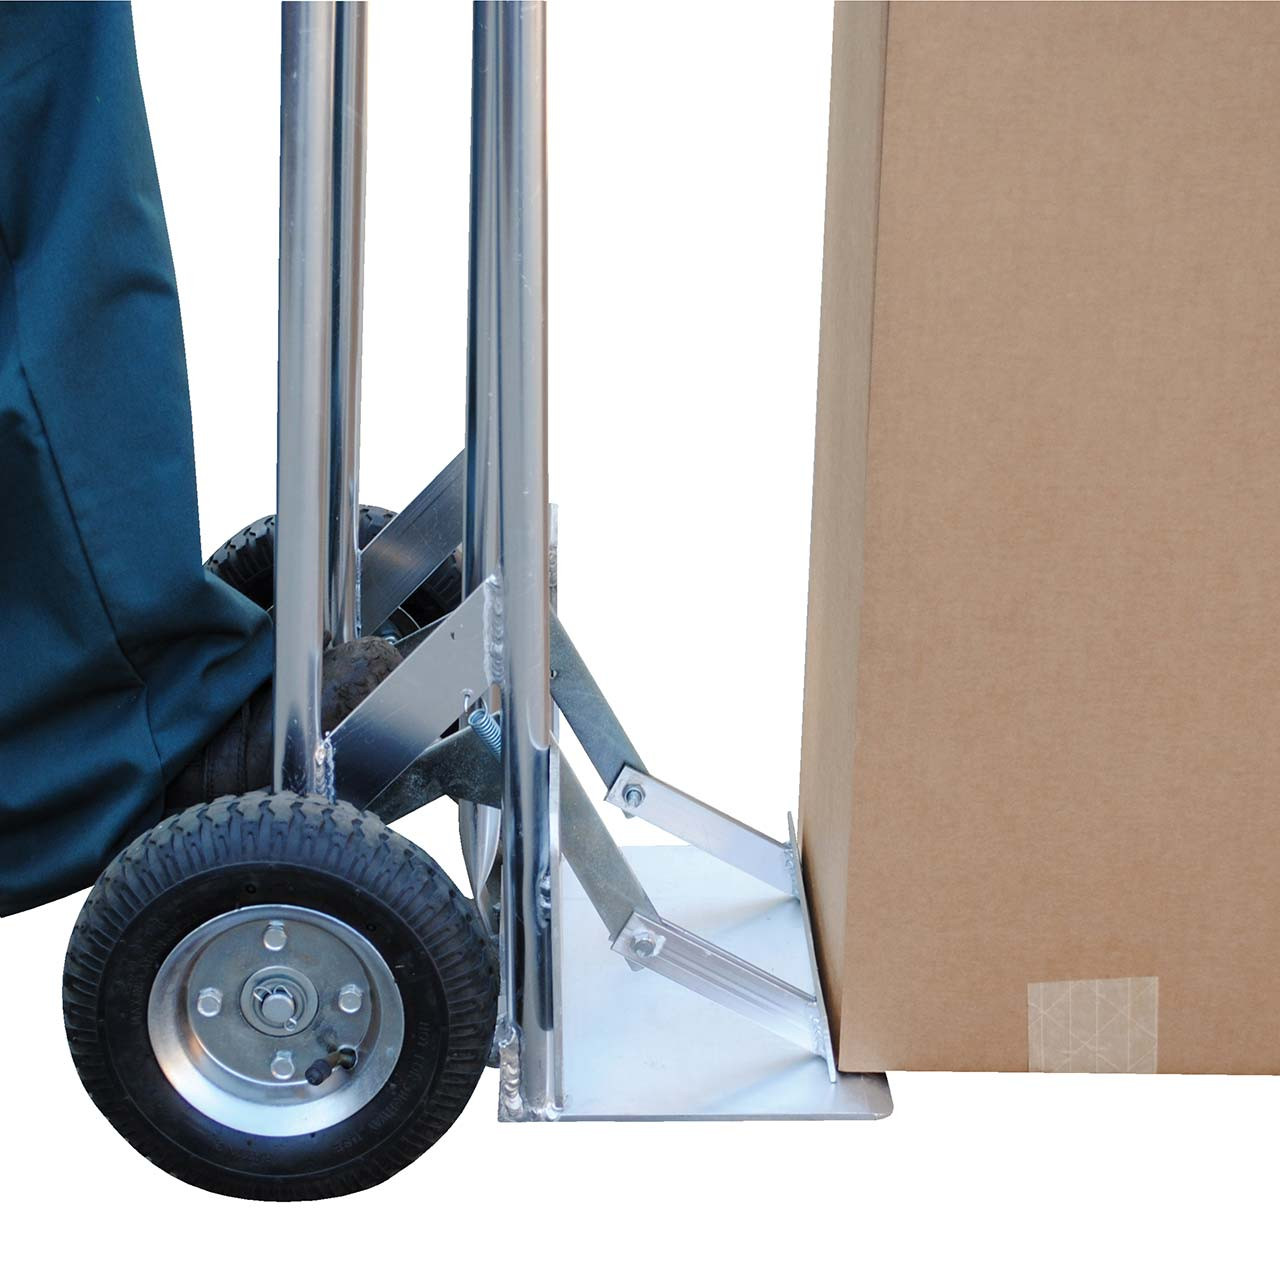 The hand truck slides the load out with a step on the back plate